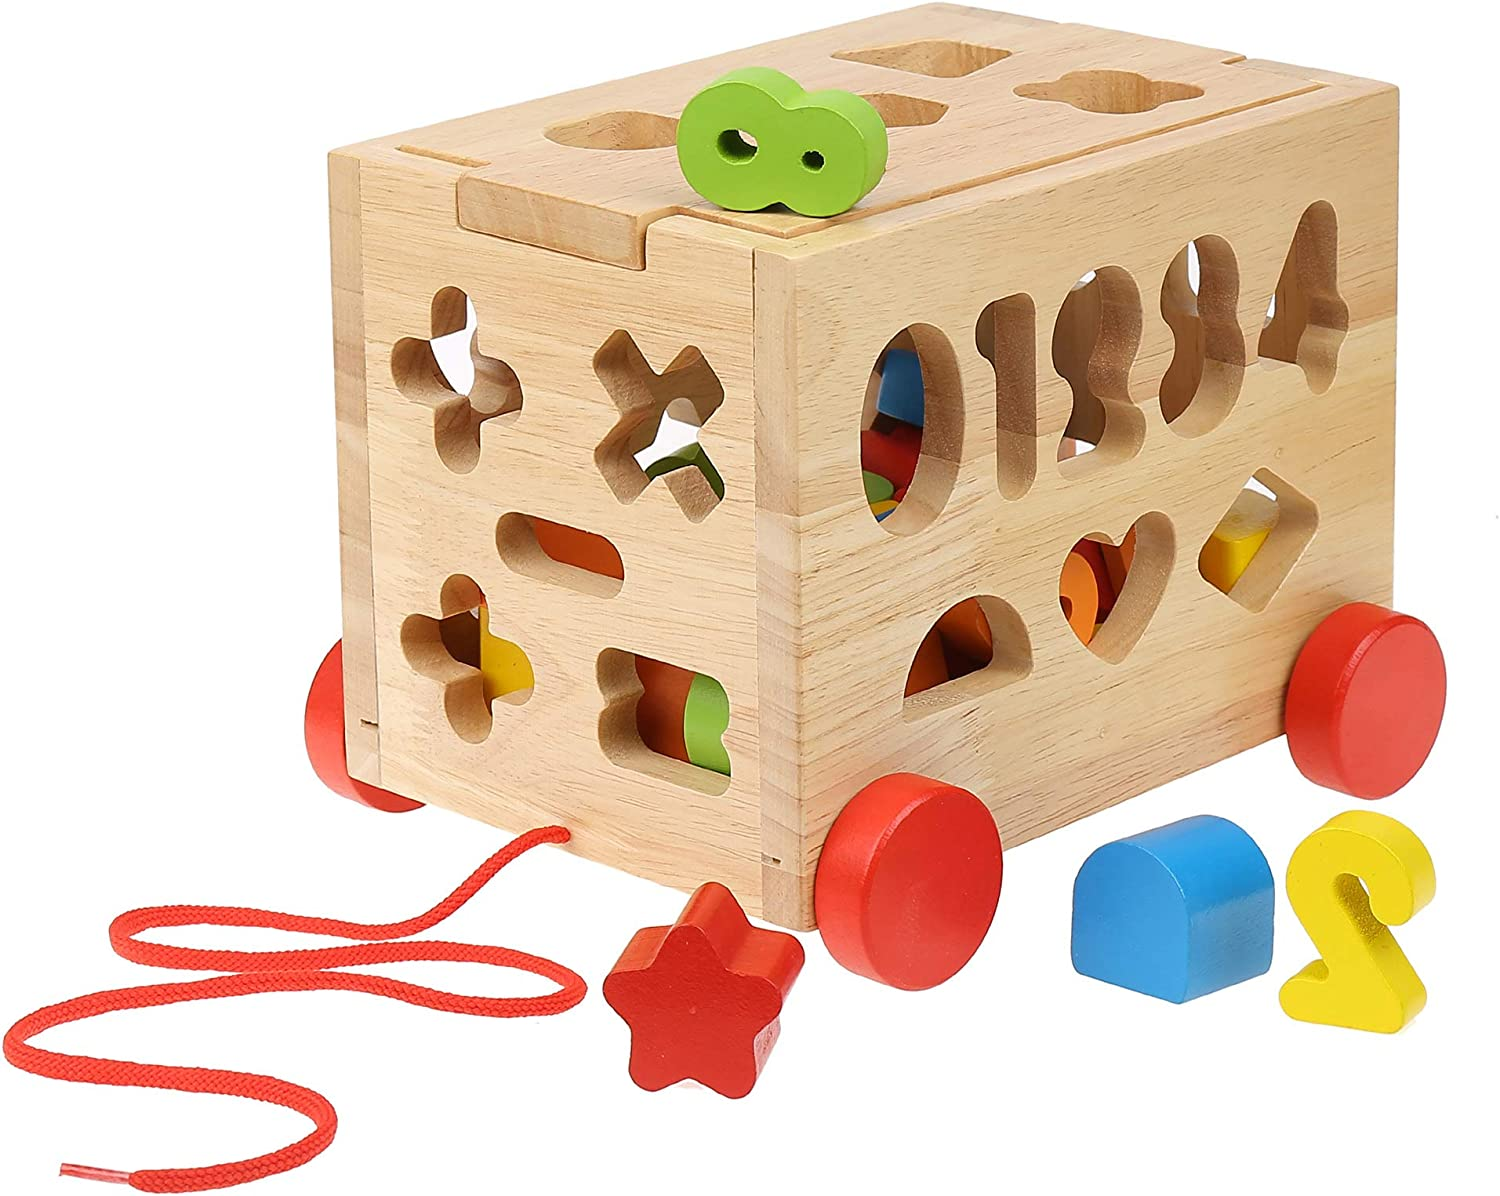 Boxiki Kids Wooden Activity Cube | Toddler Blocks | Educational Toy | Wooden Baby Toy for Ages 3+